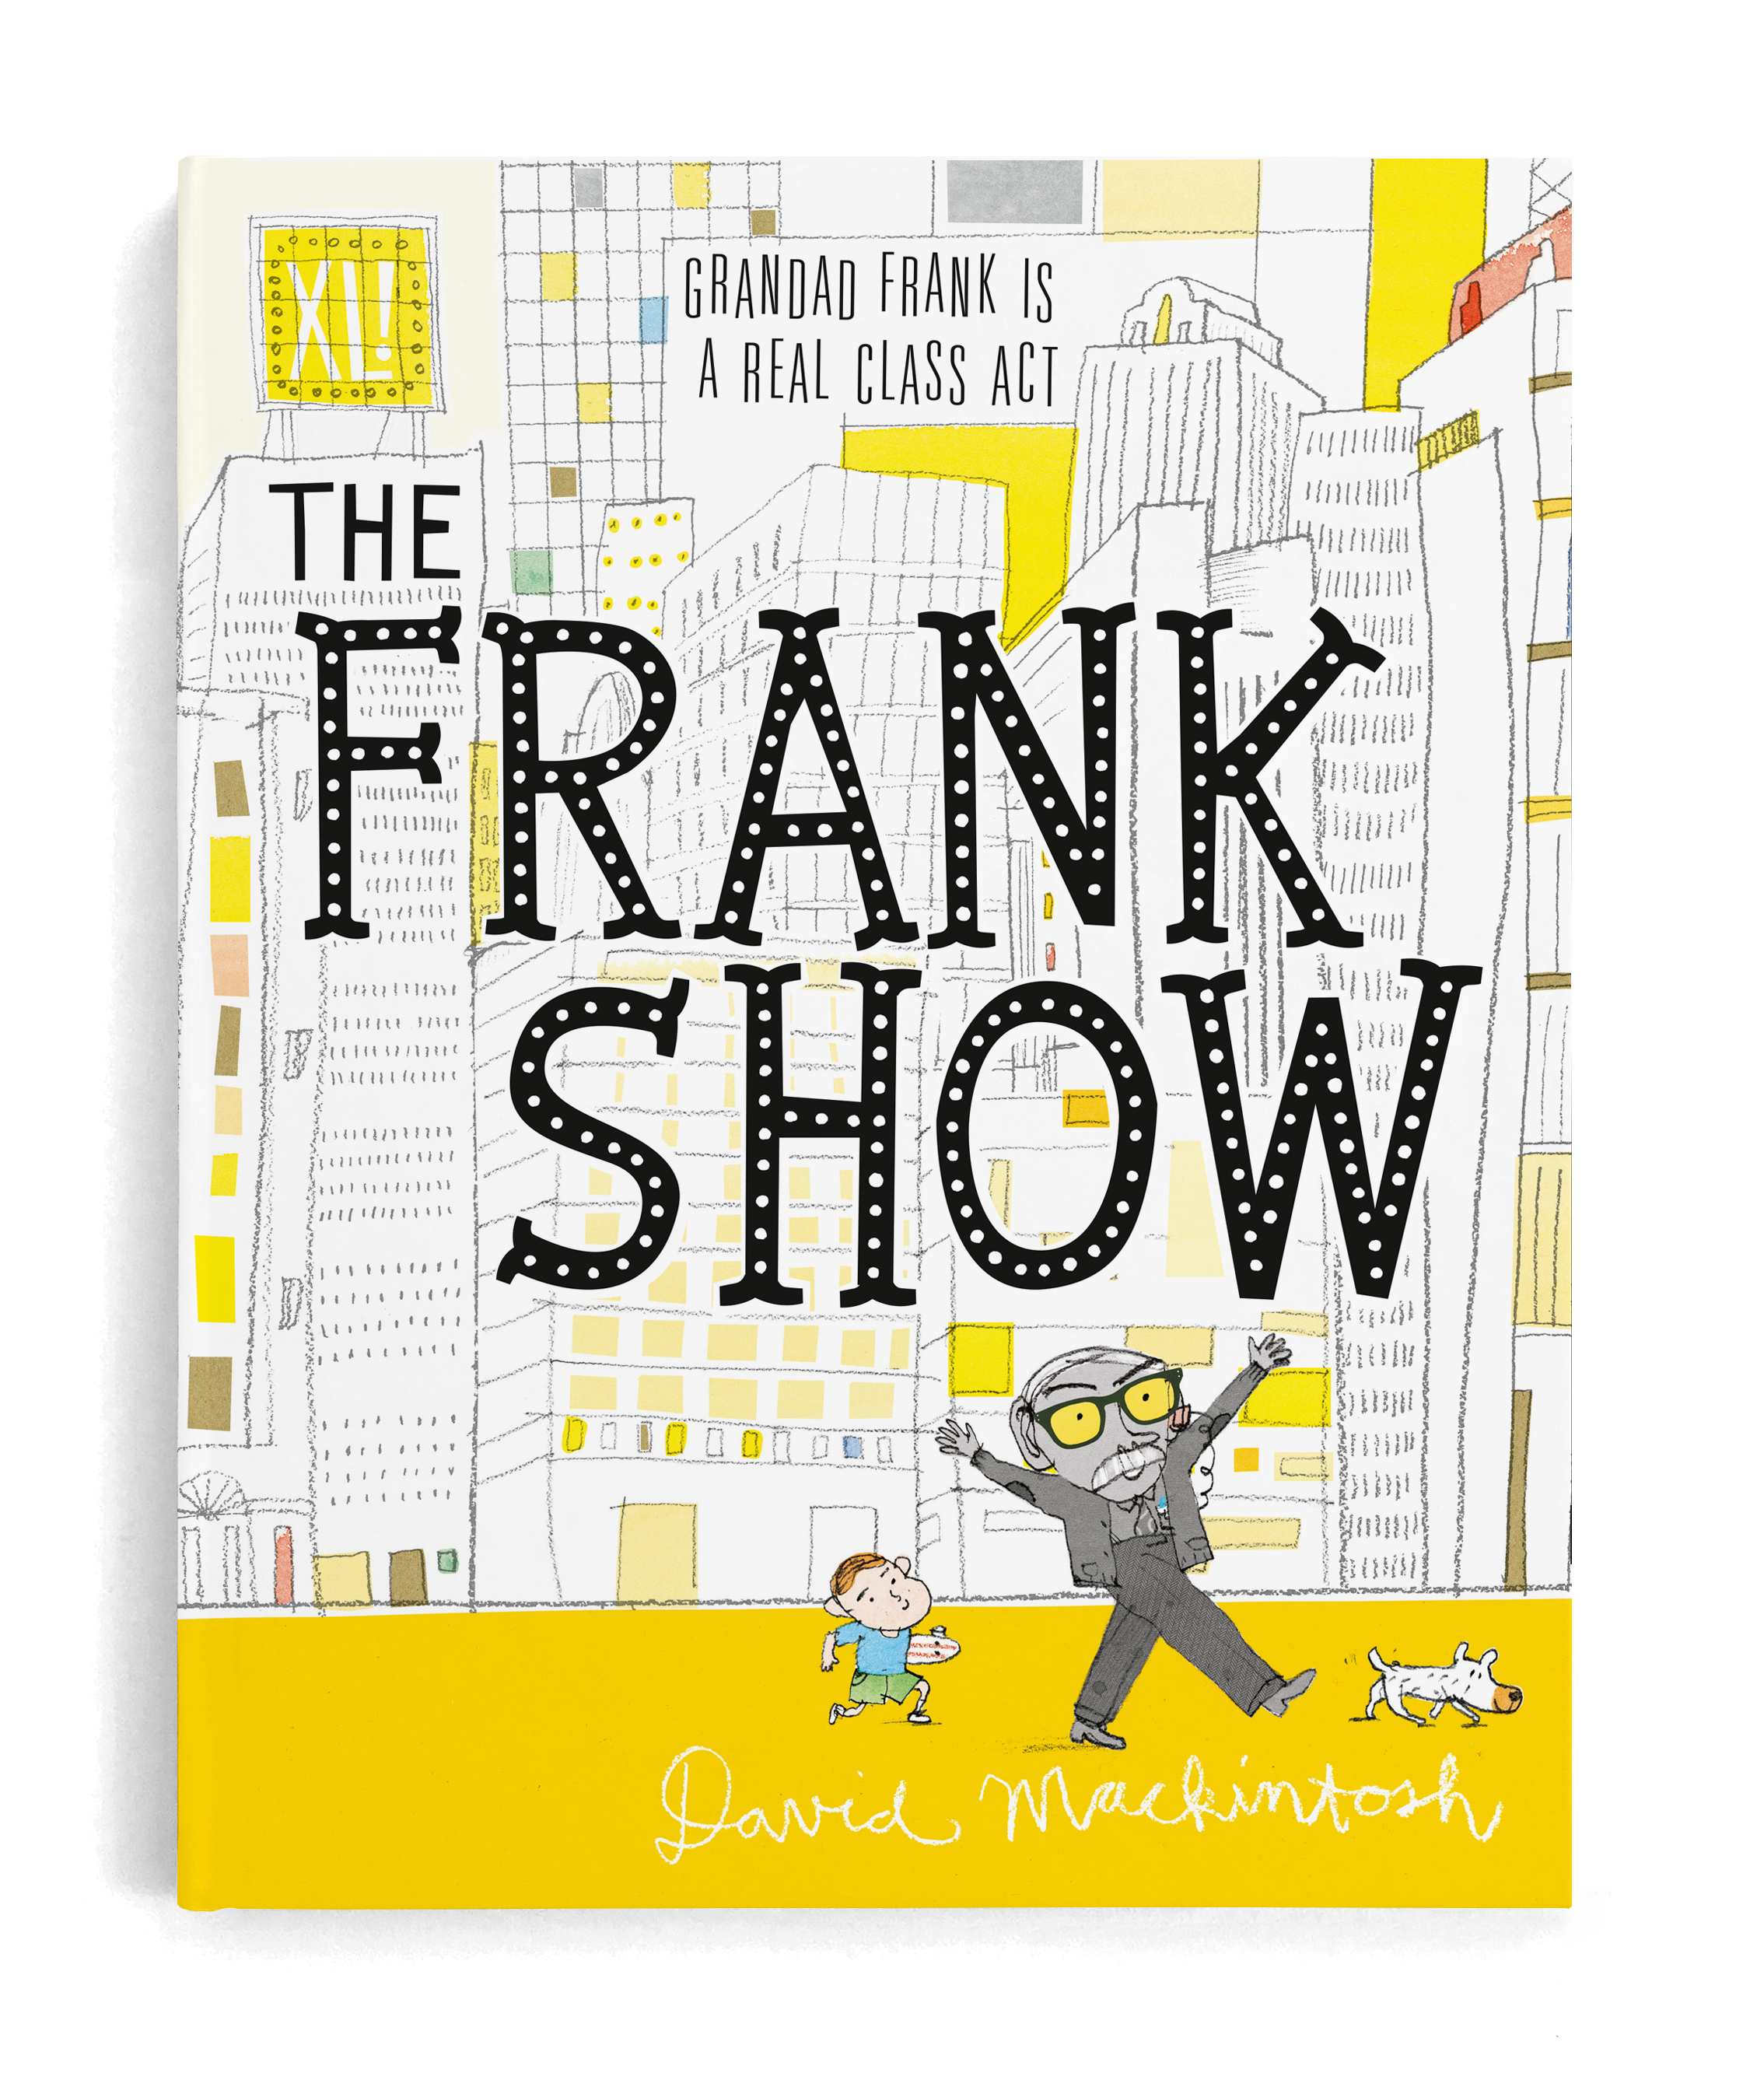 the franks show by david mackintosh